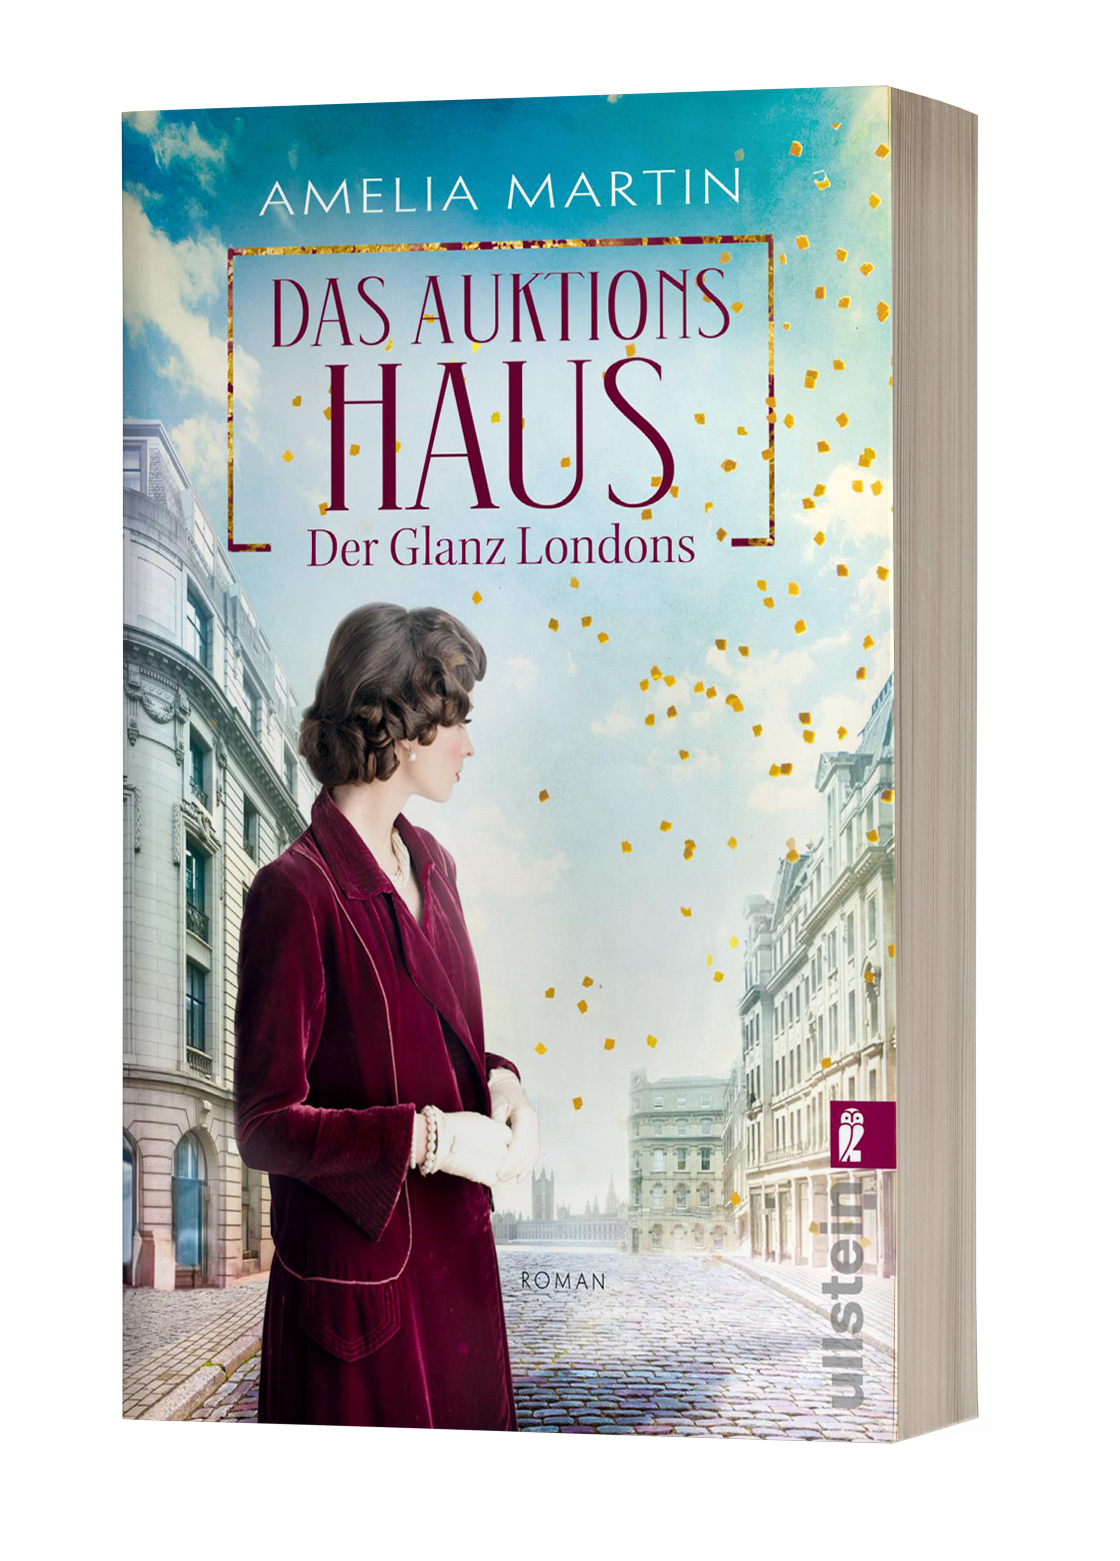 Auktionshaus cover